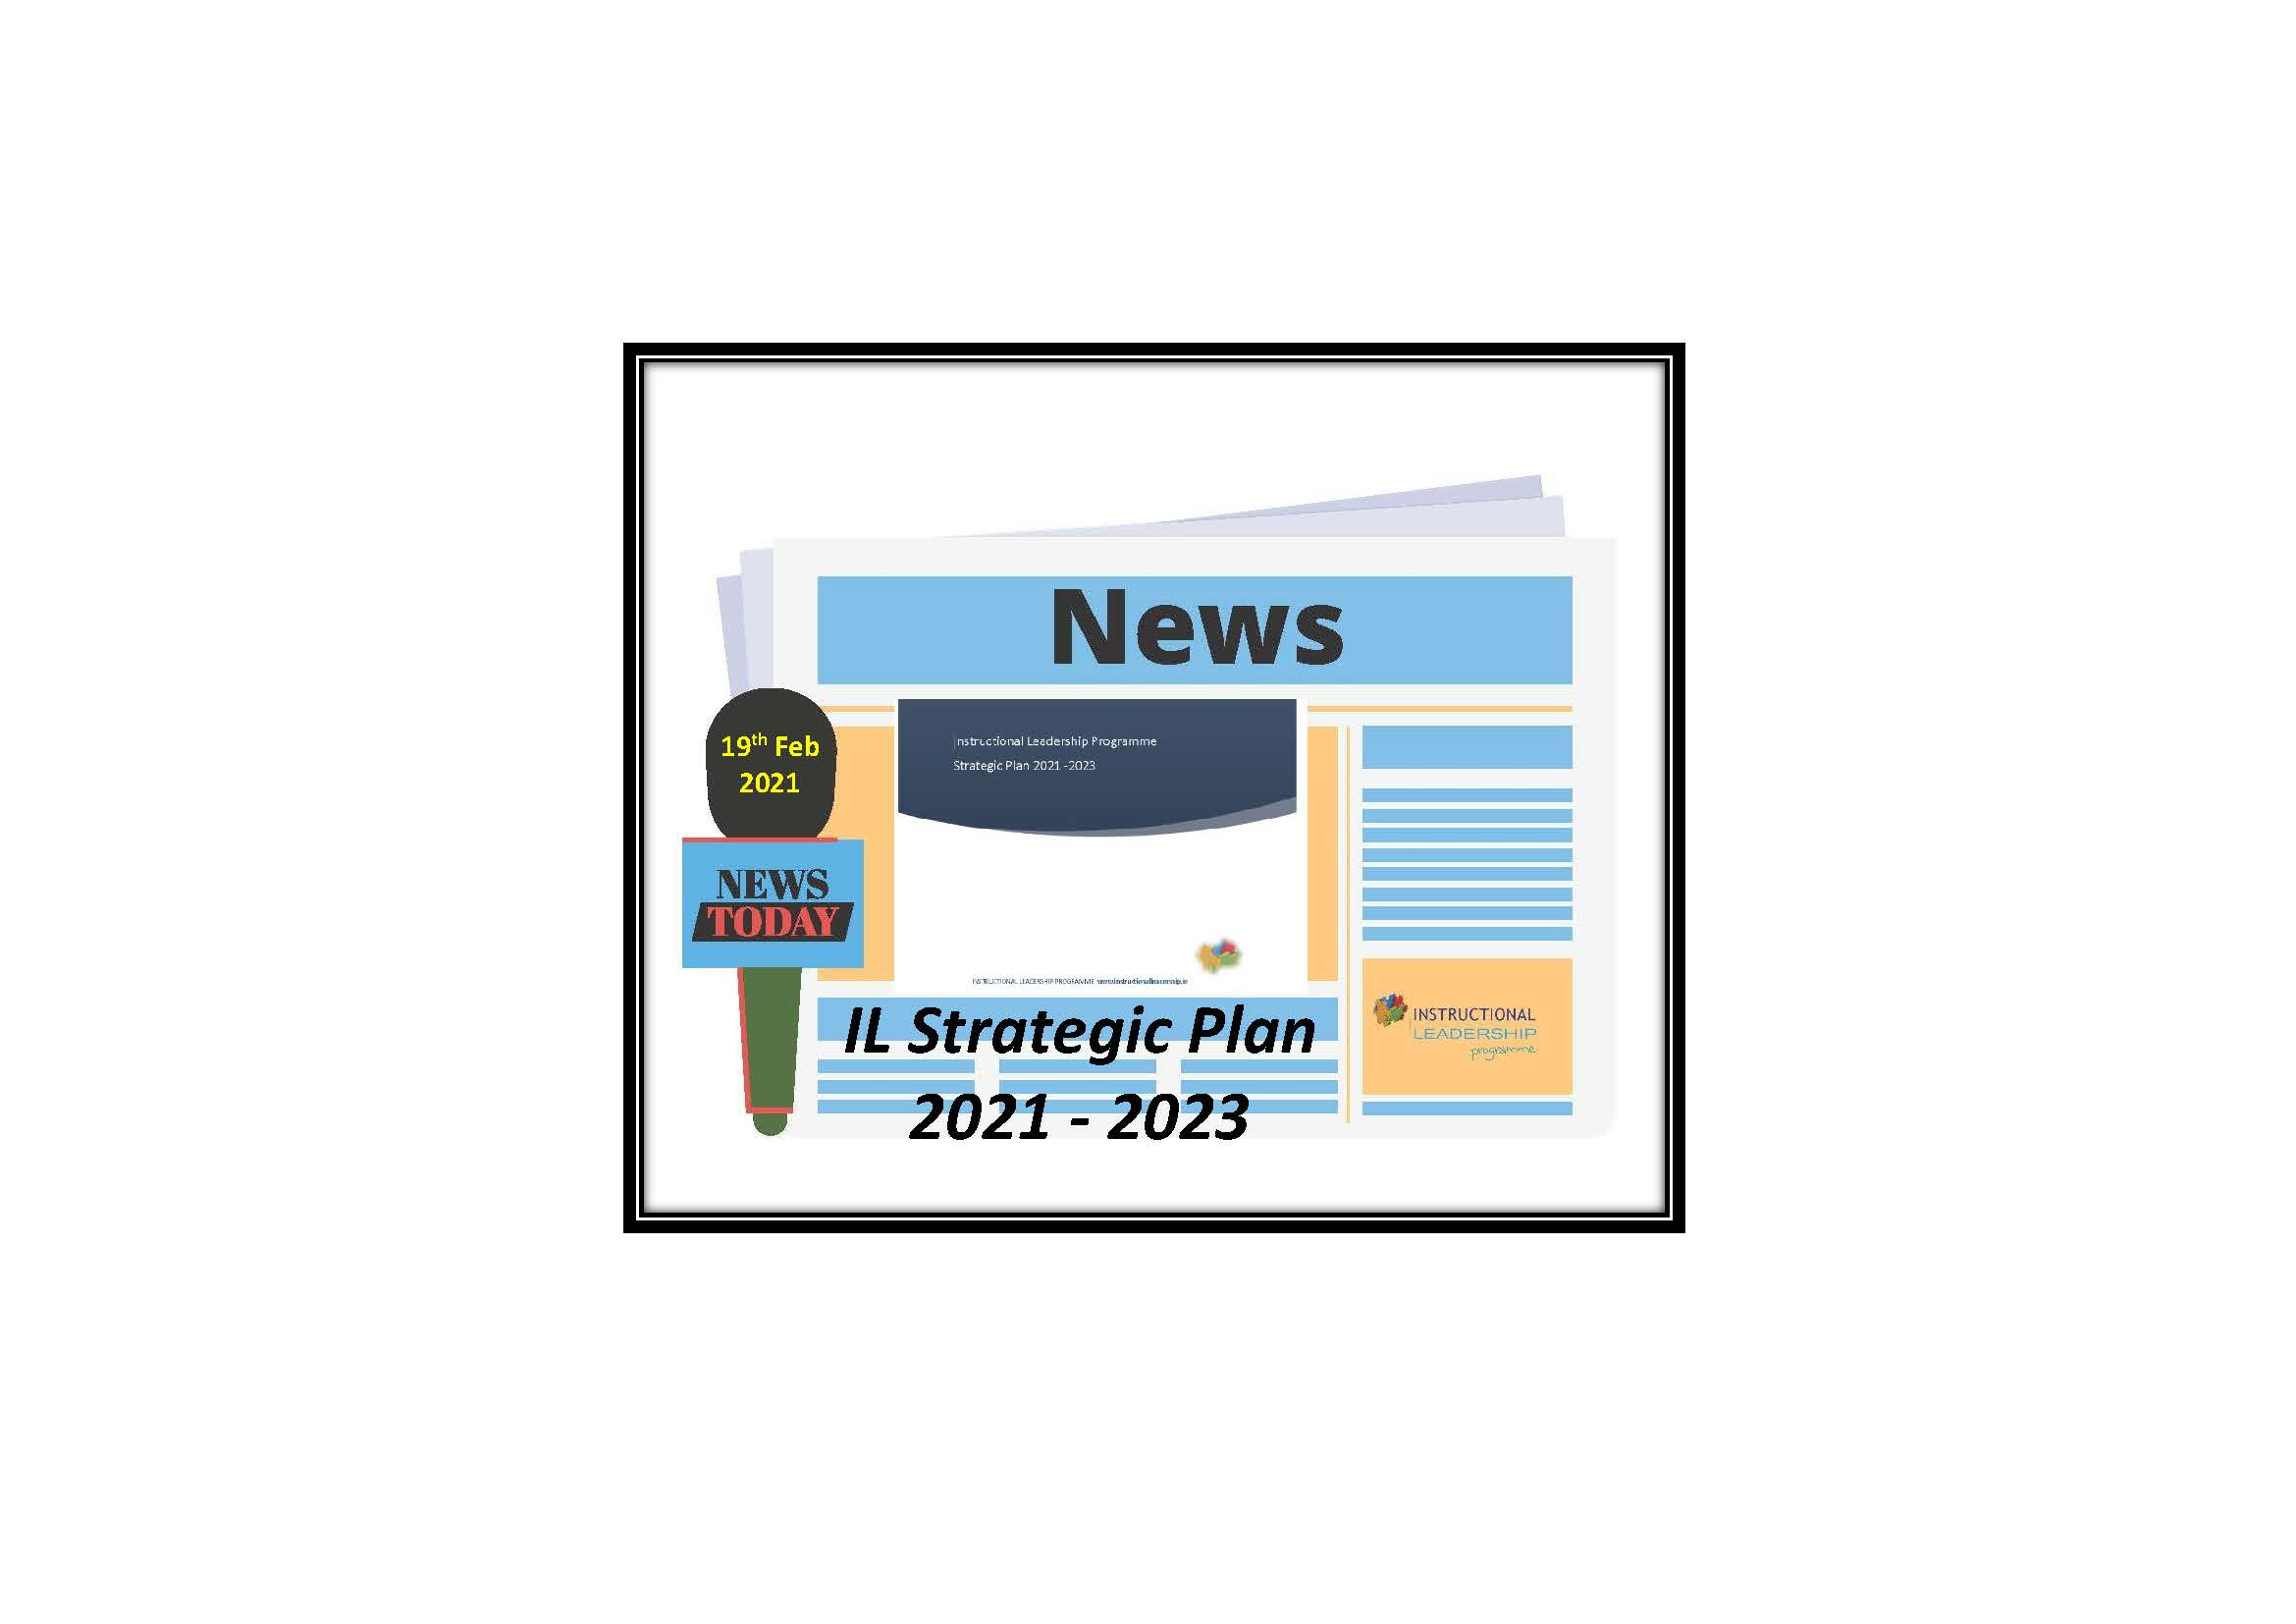 IL Strategic Plan